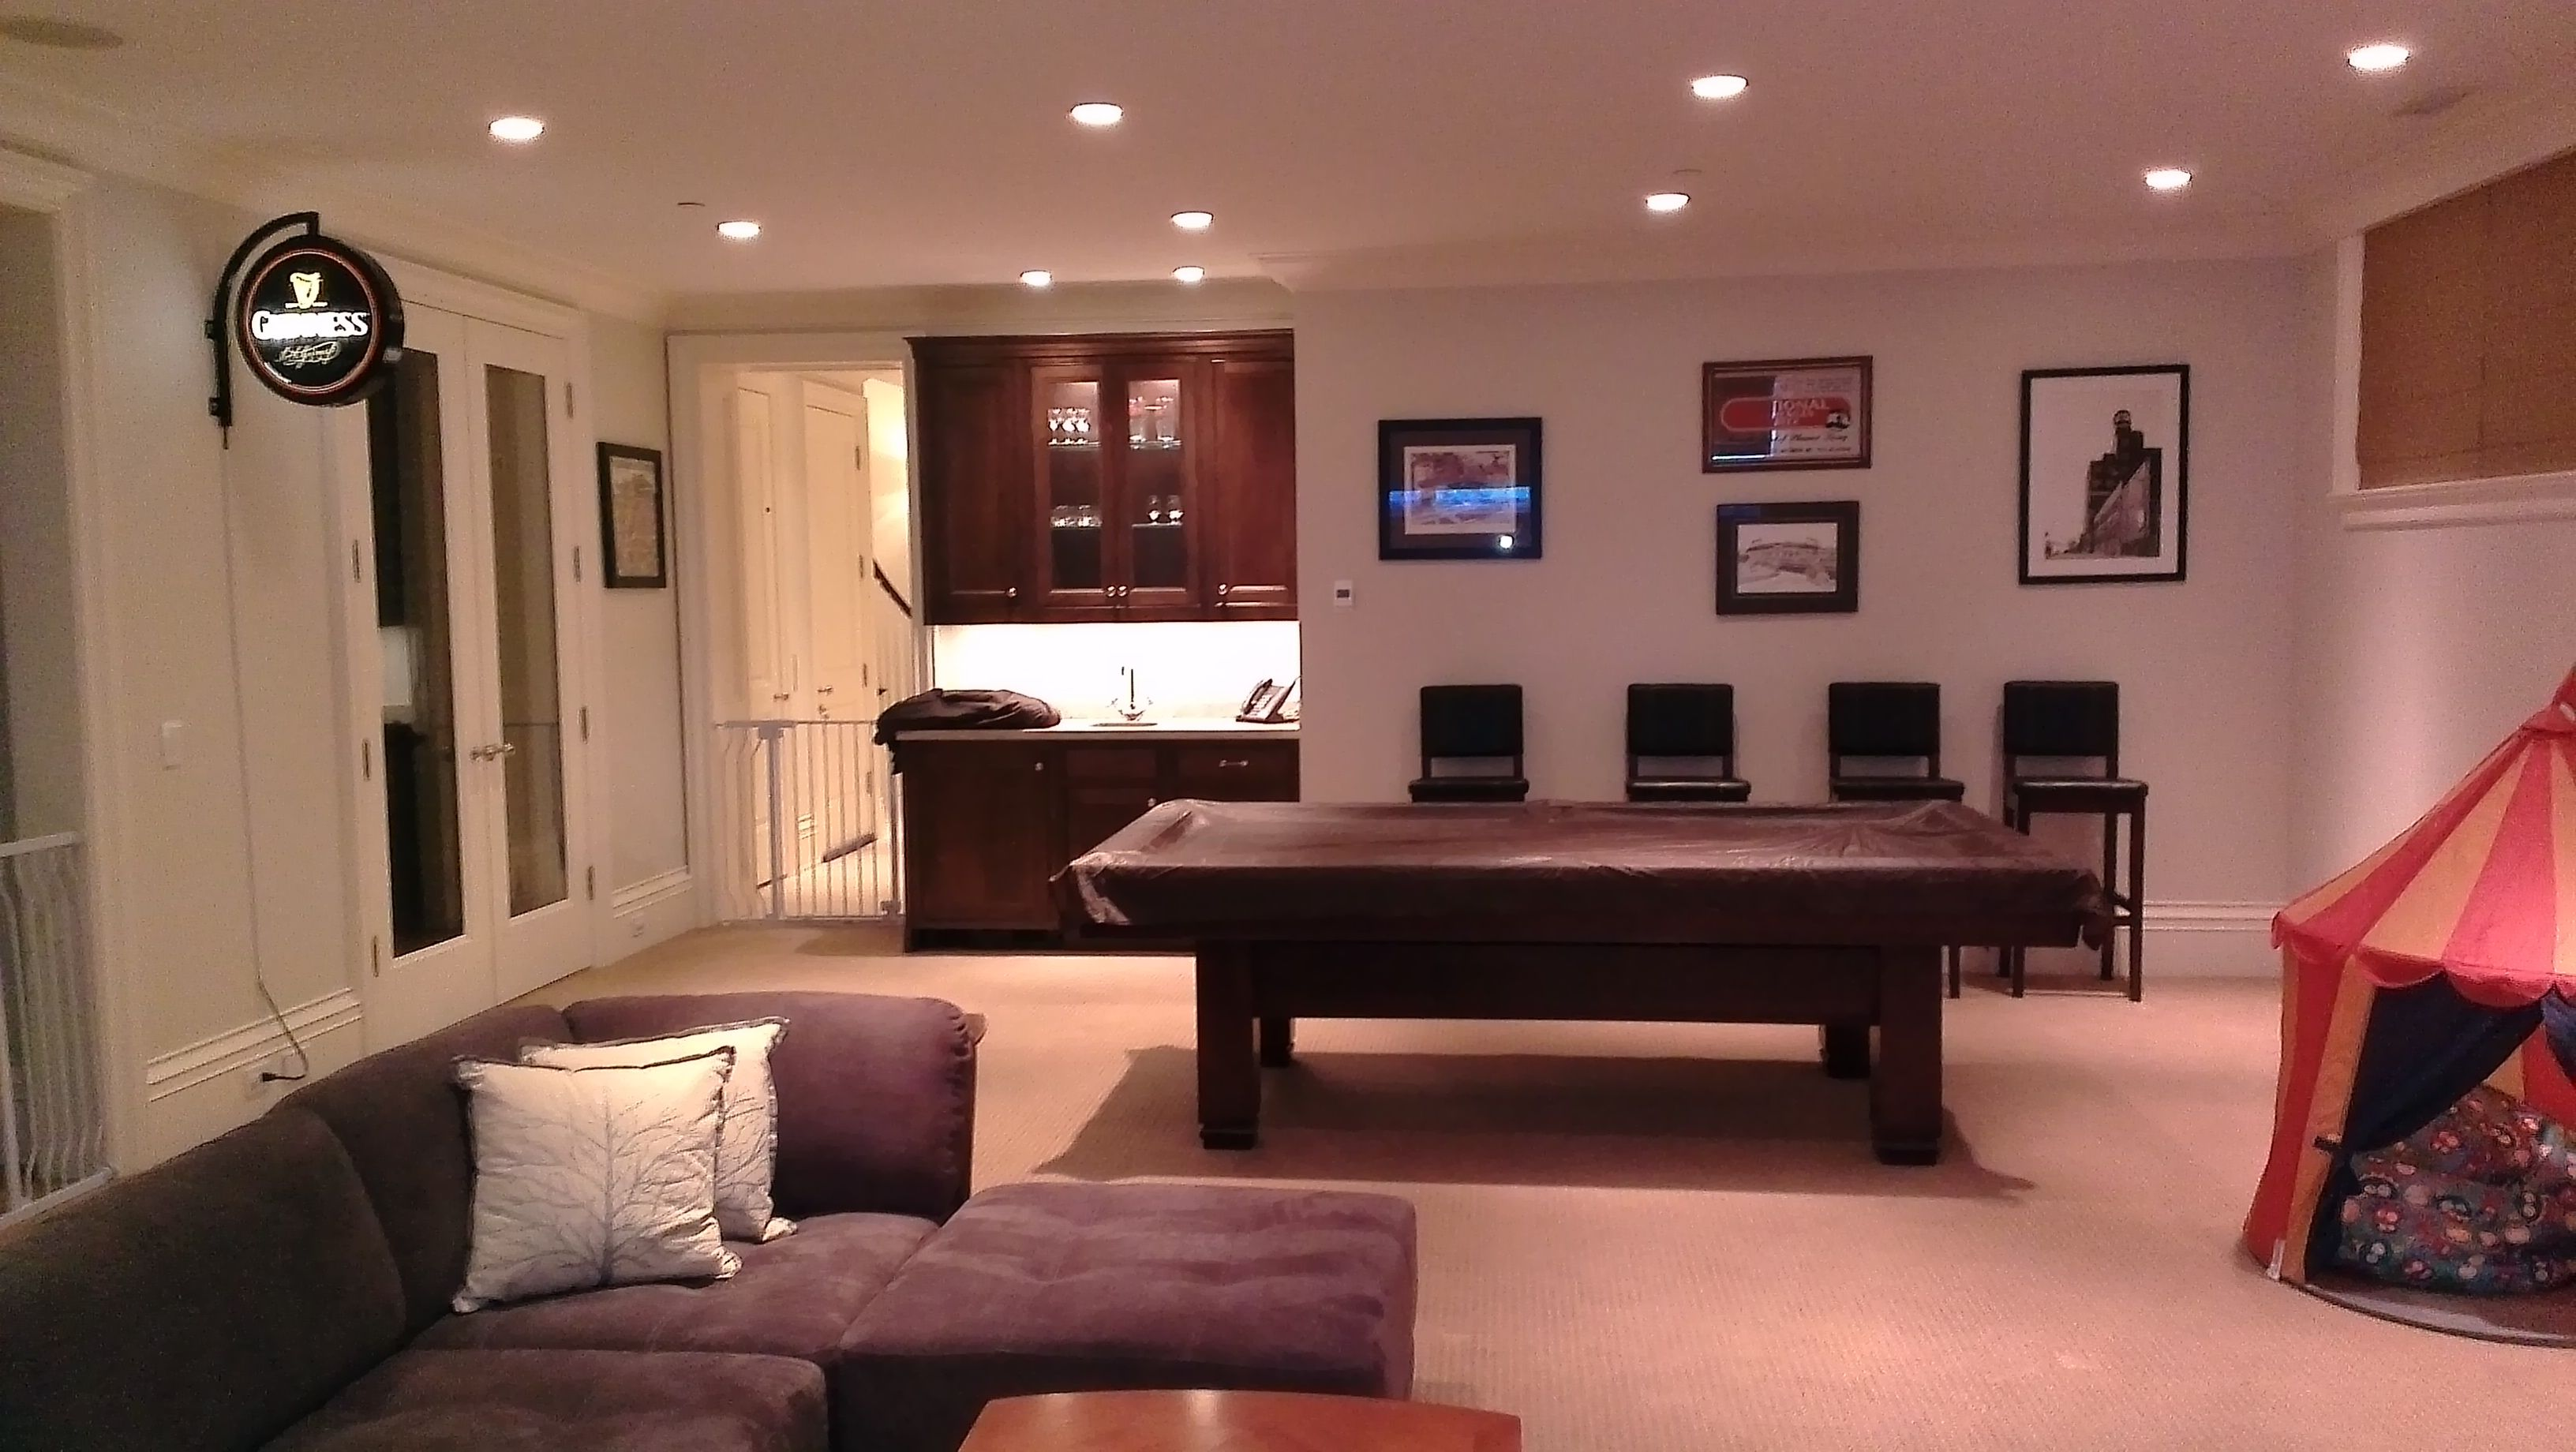 Basement Rec Room, Bar & Pool Table Idea